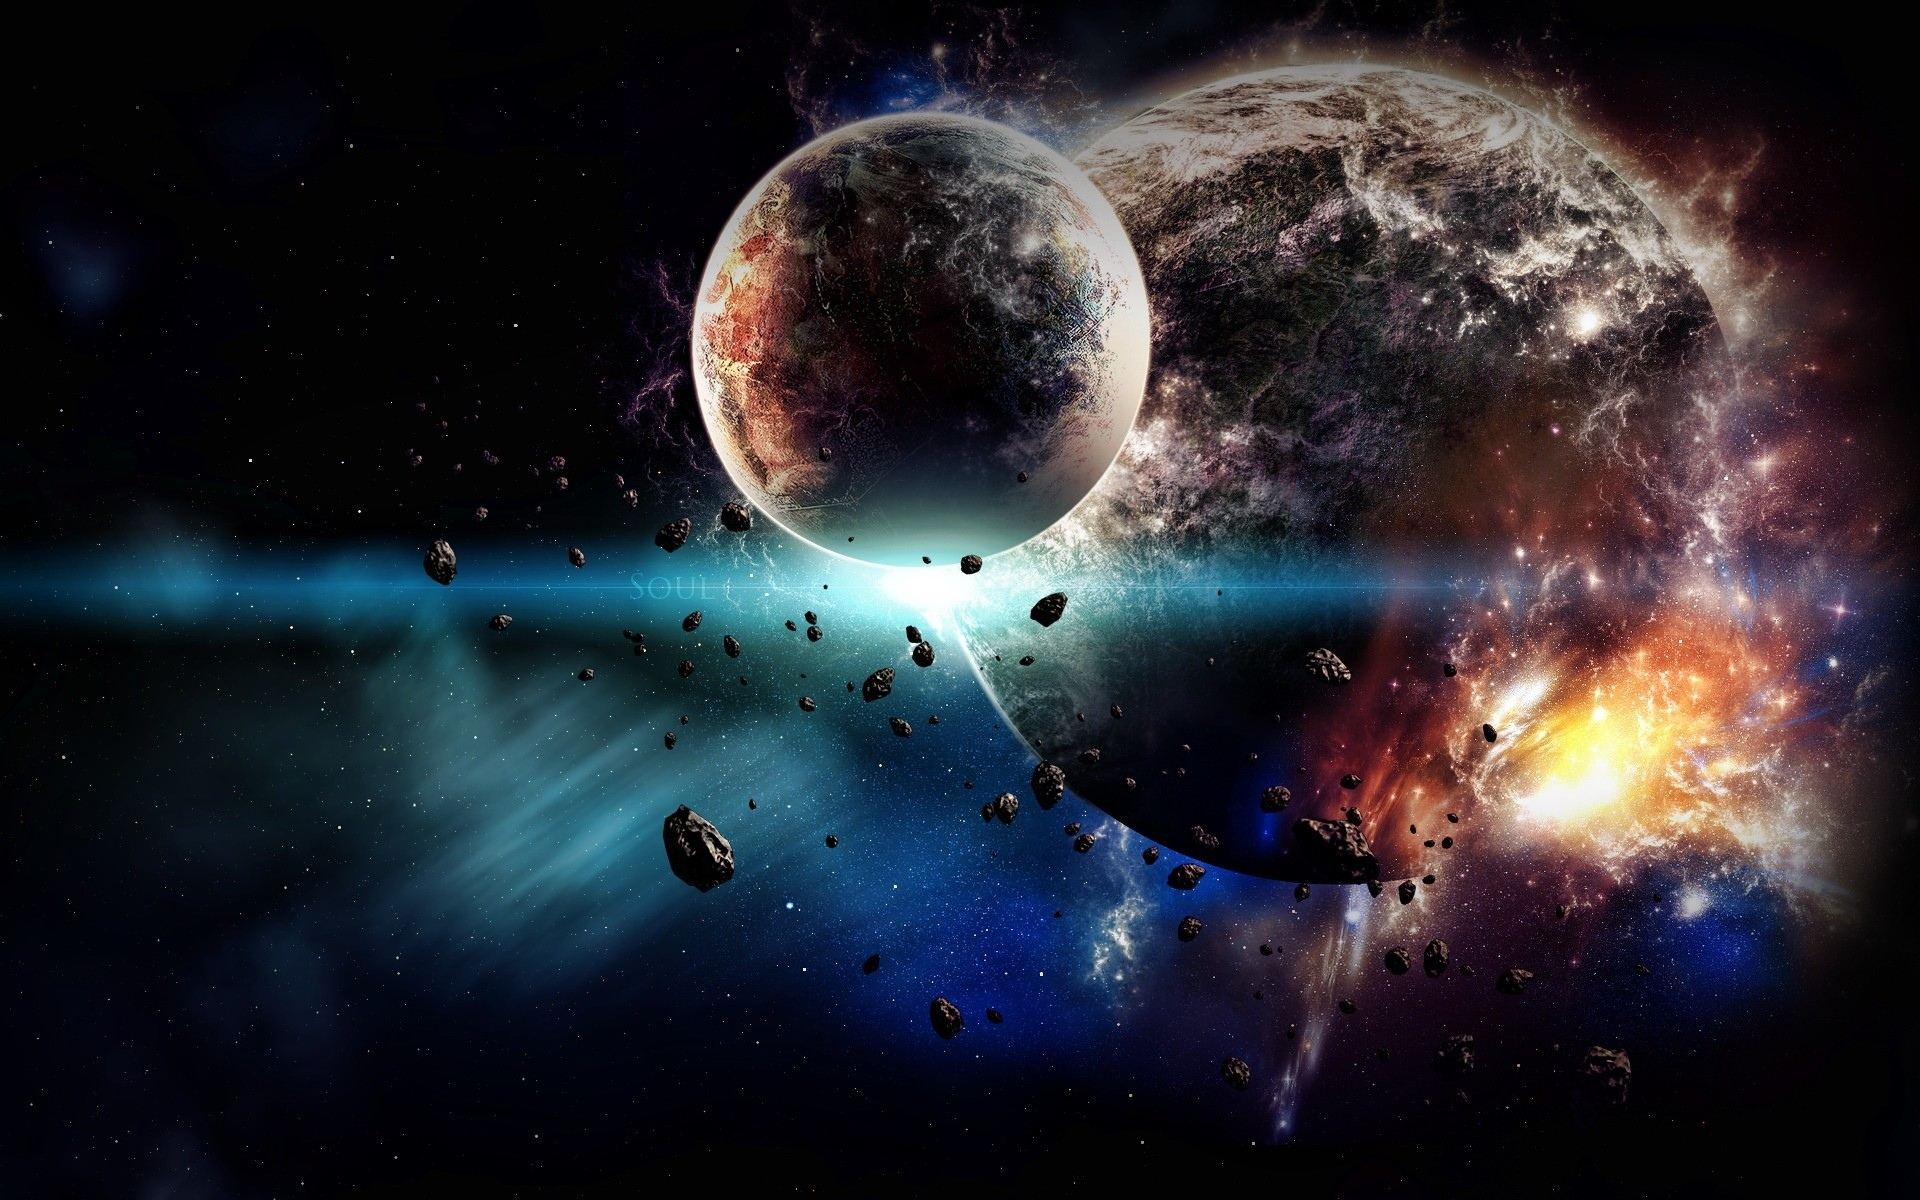 3d wallpaper colorful planets - photo #15